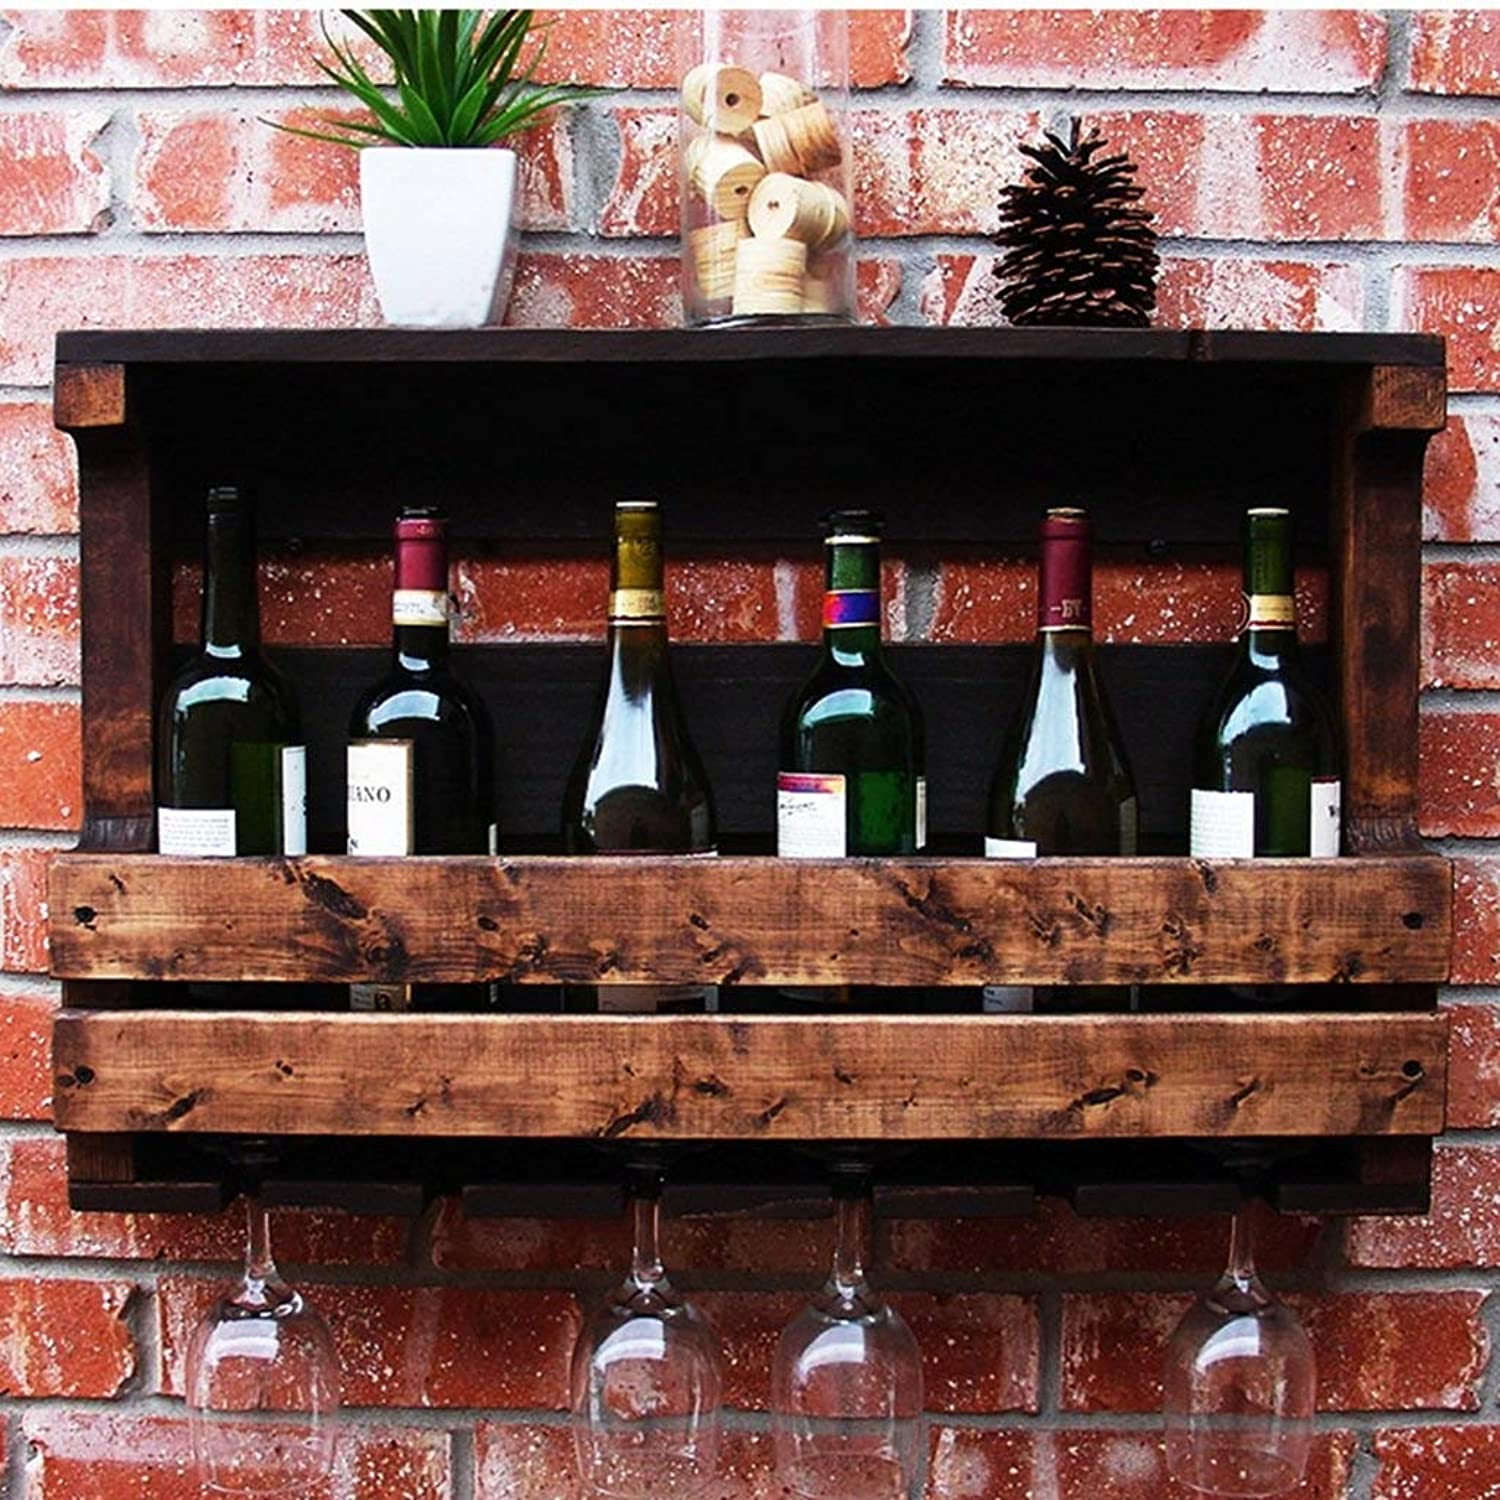 Red Wine Shelf Wall Hanging Solid Wood Hanging Wine Cooler Wall Tall Glass Holder Green Paint Racks & Holders (Size   70  42  13 cm) (Size   50  42  13 cm)